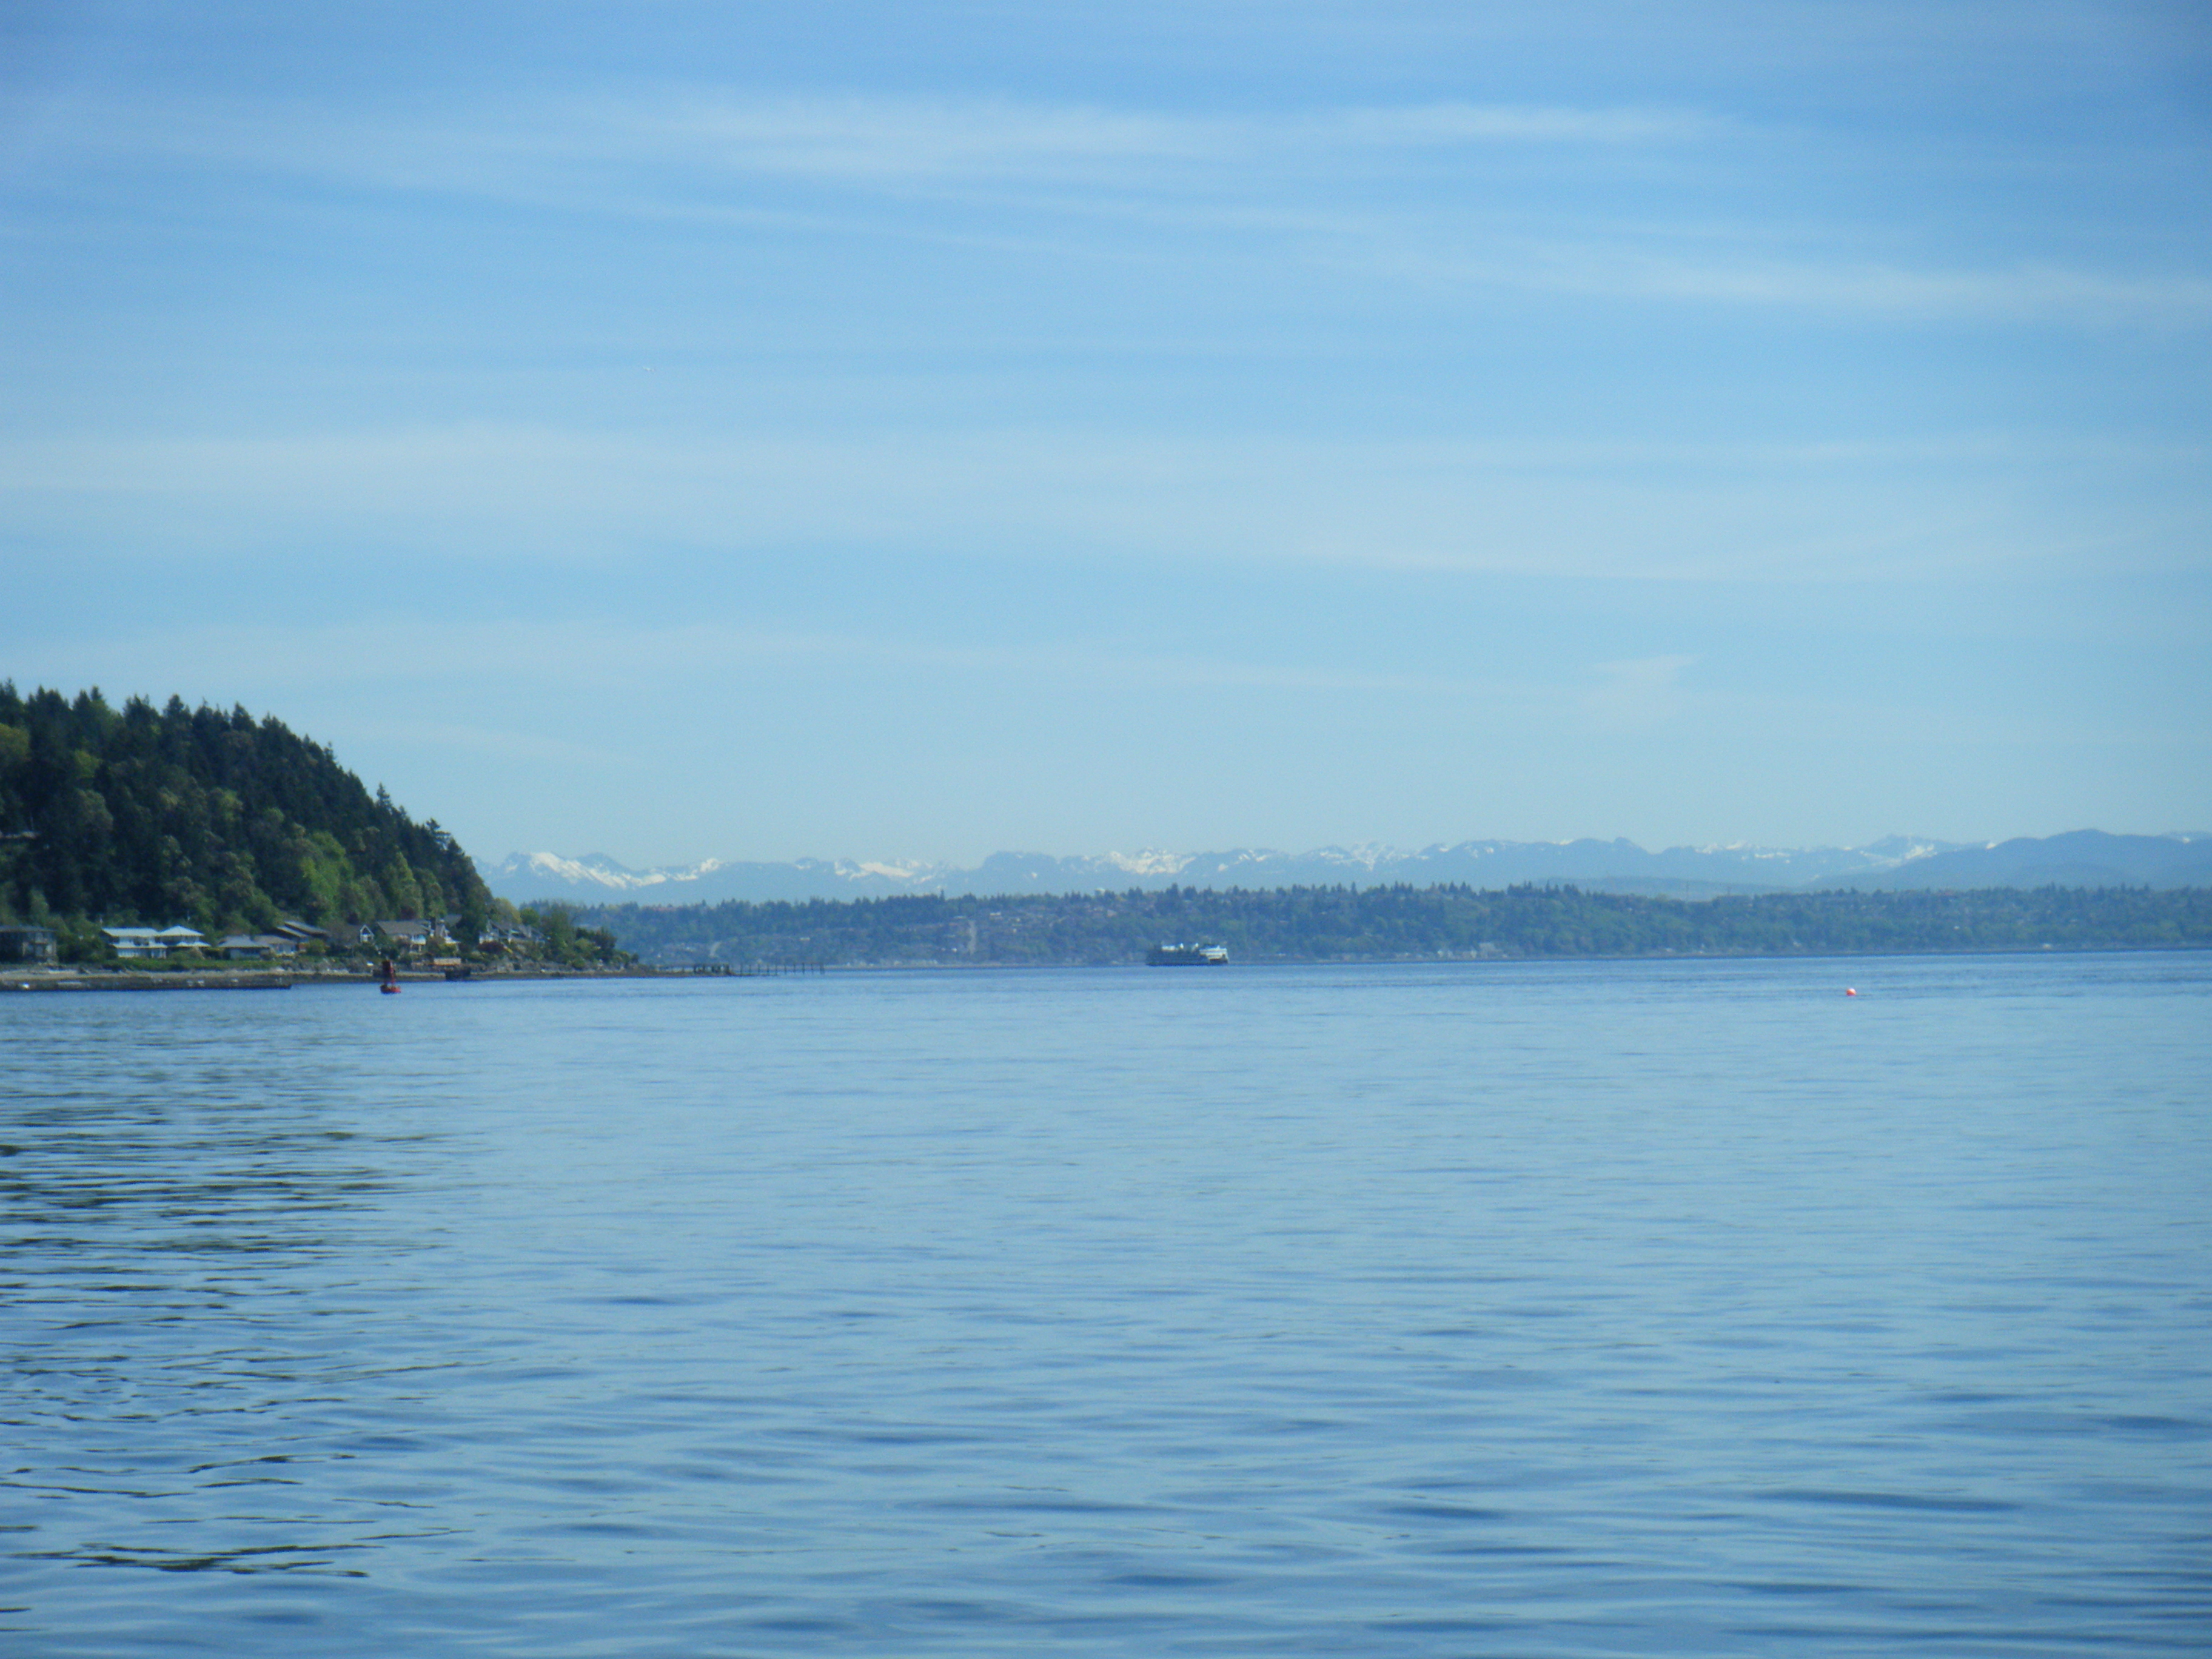 Ferry on the Puget Sound on a warm sunny day.